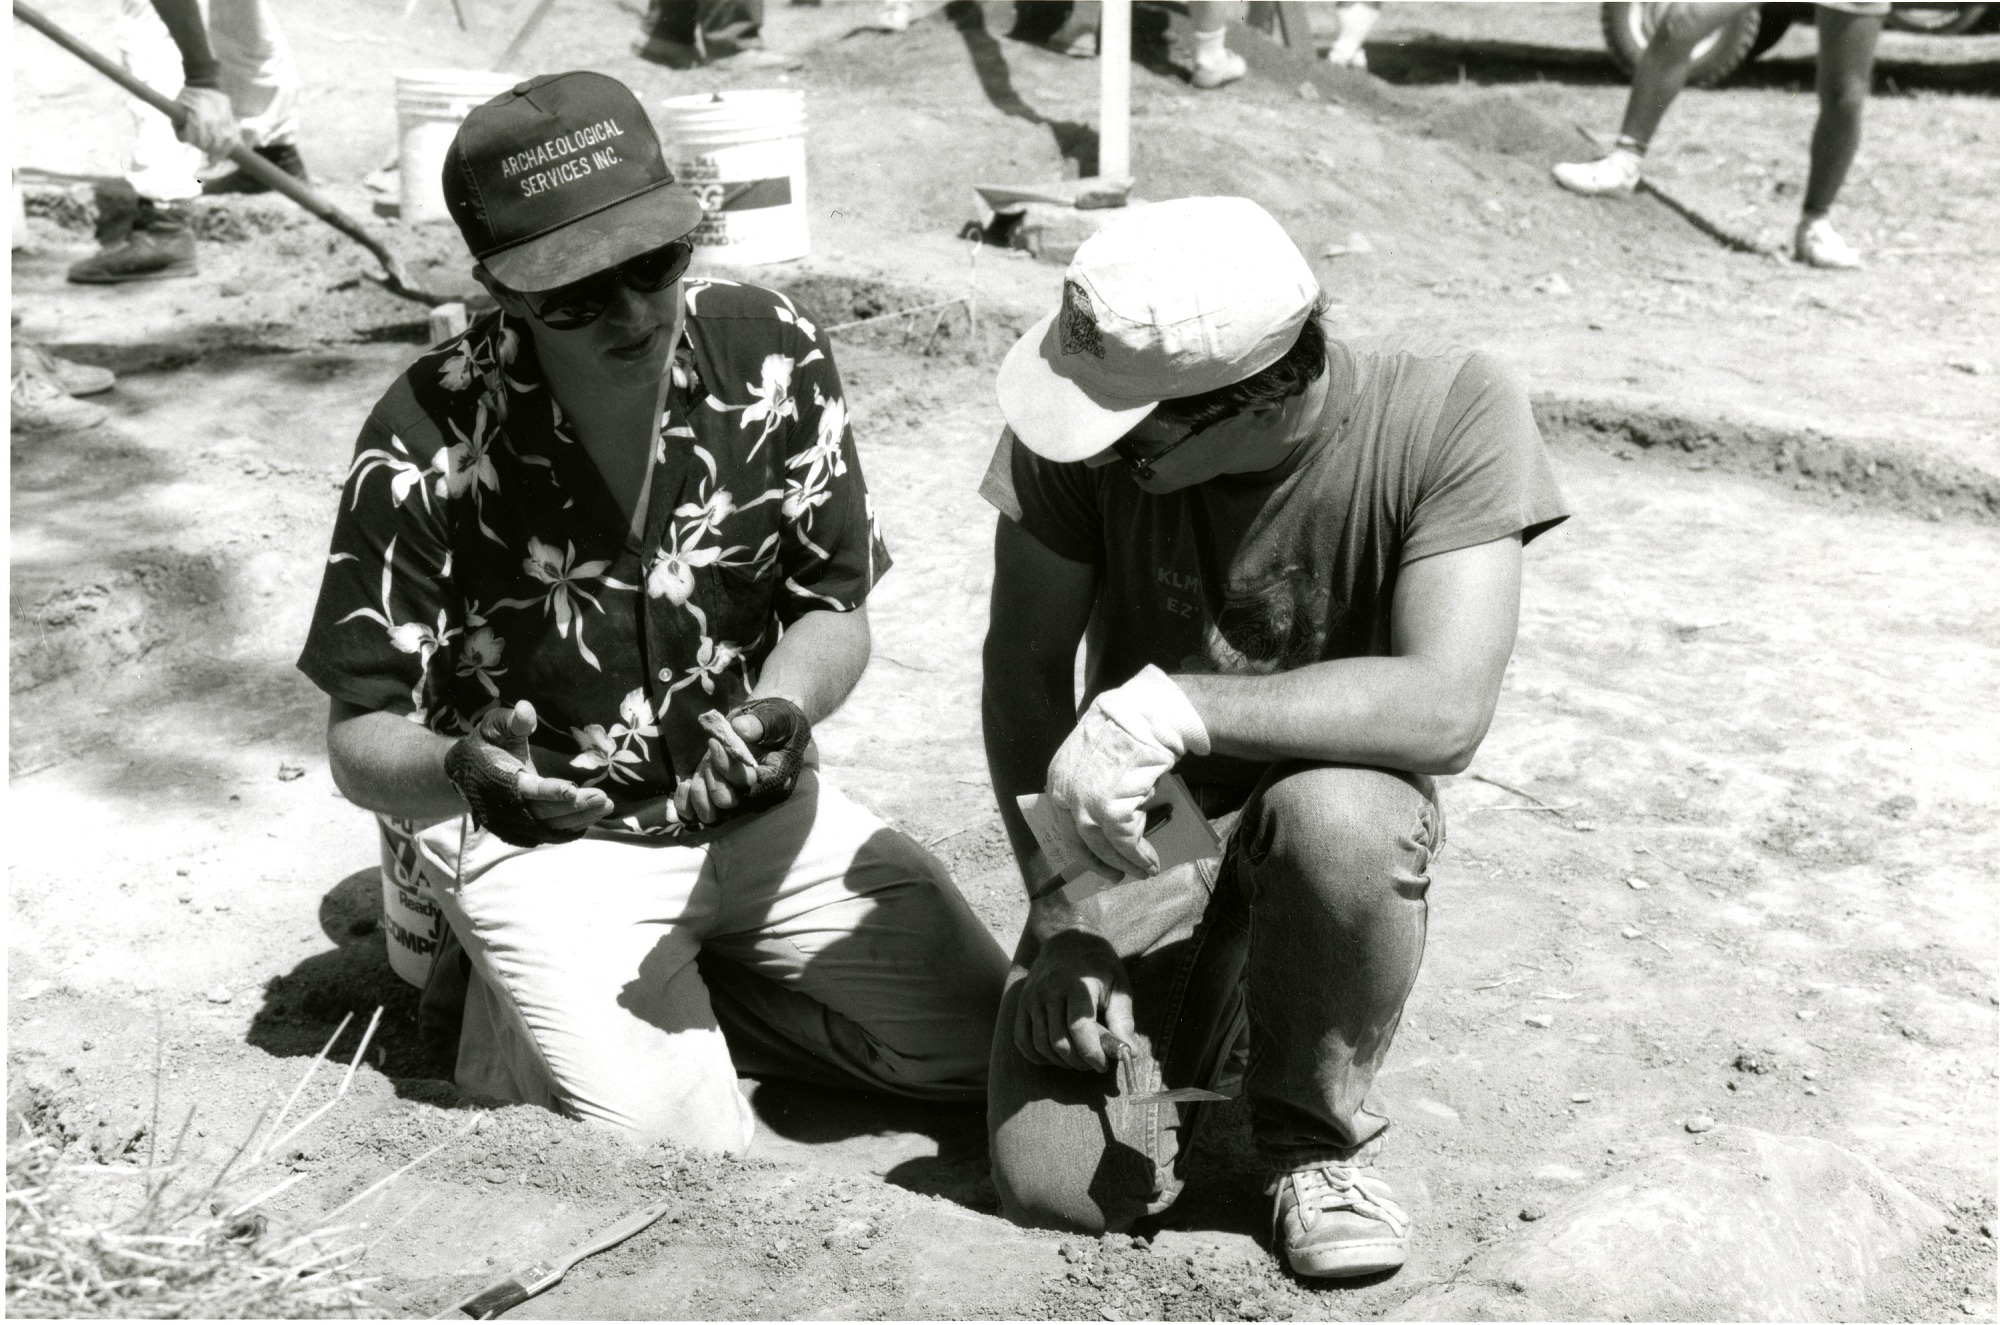 Aug 17 Curator Doug Owsley and Archaeological Dig Team Member Examine Bone at Antietam